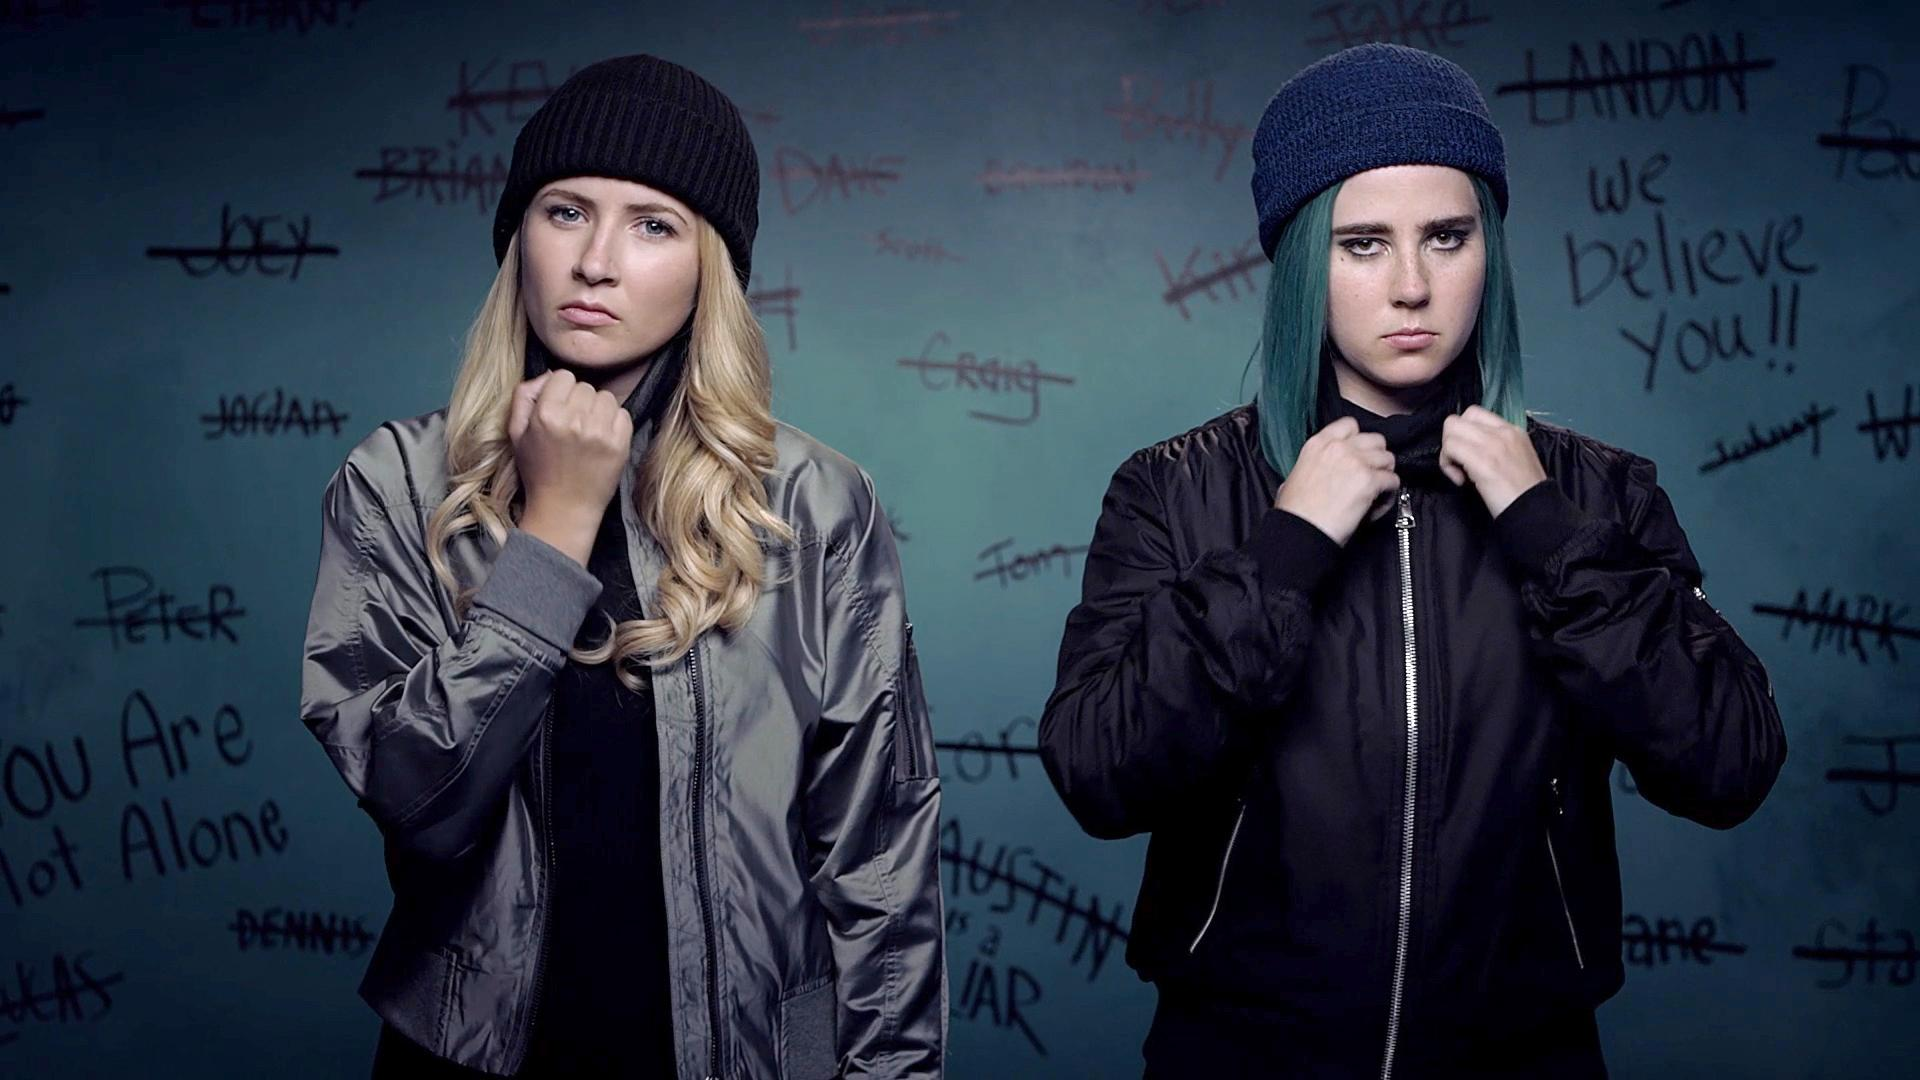 Eliza Bennett and Taylor Dearden stand in front of a wall of graffiti in dark colored caps